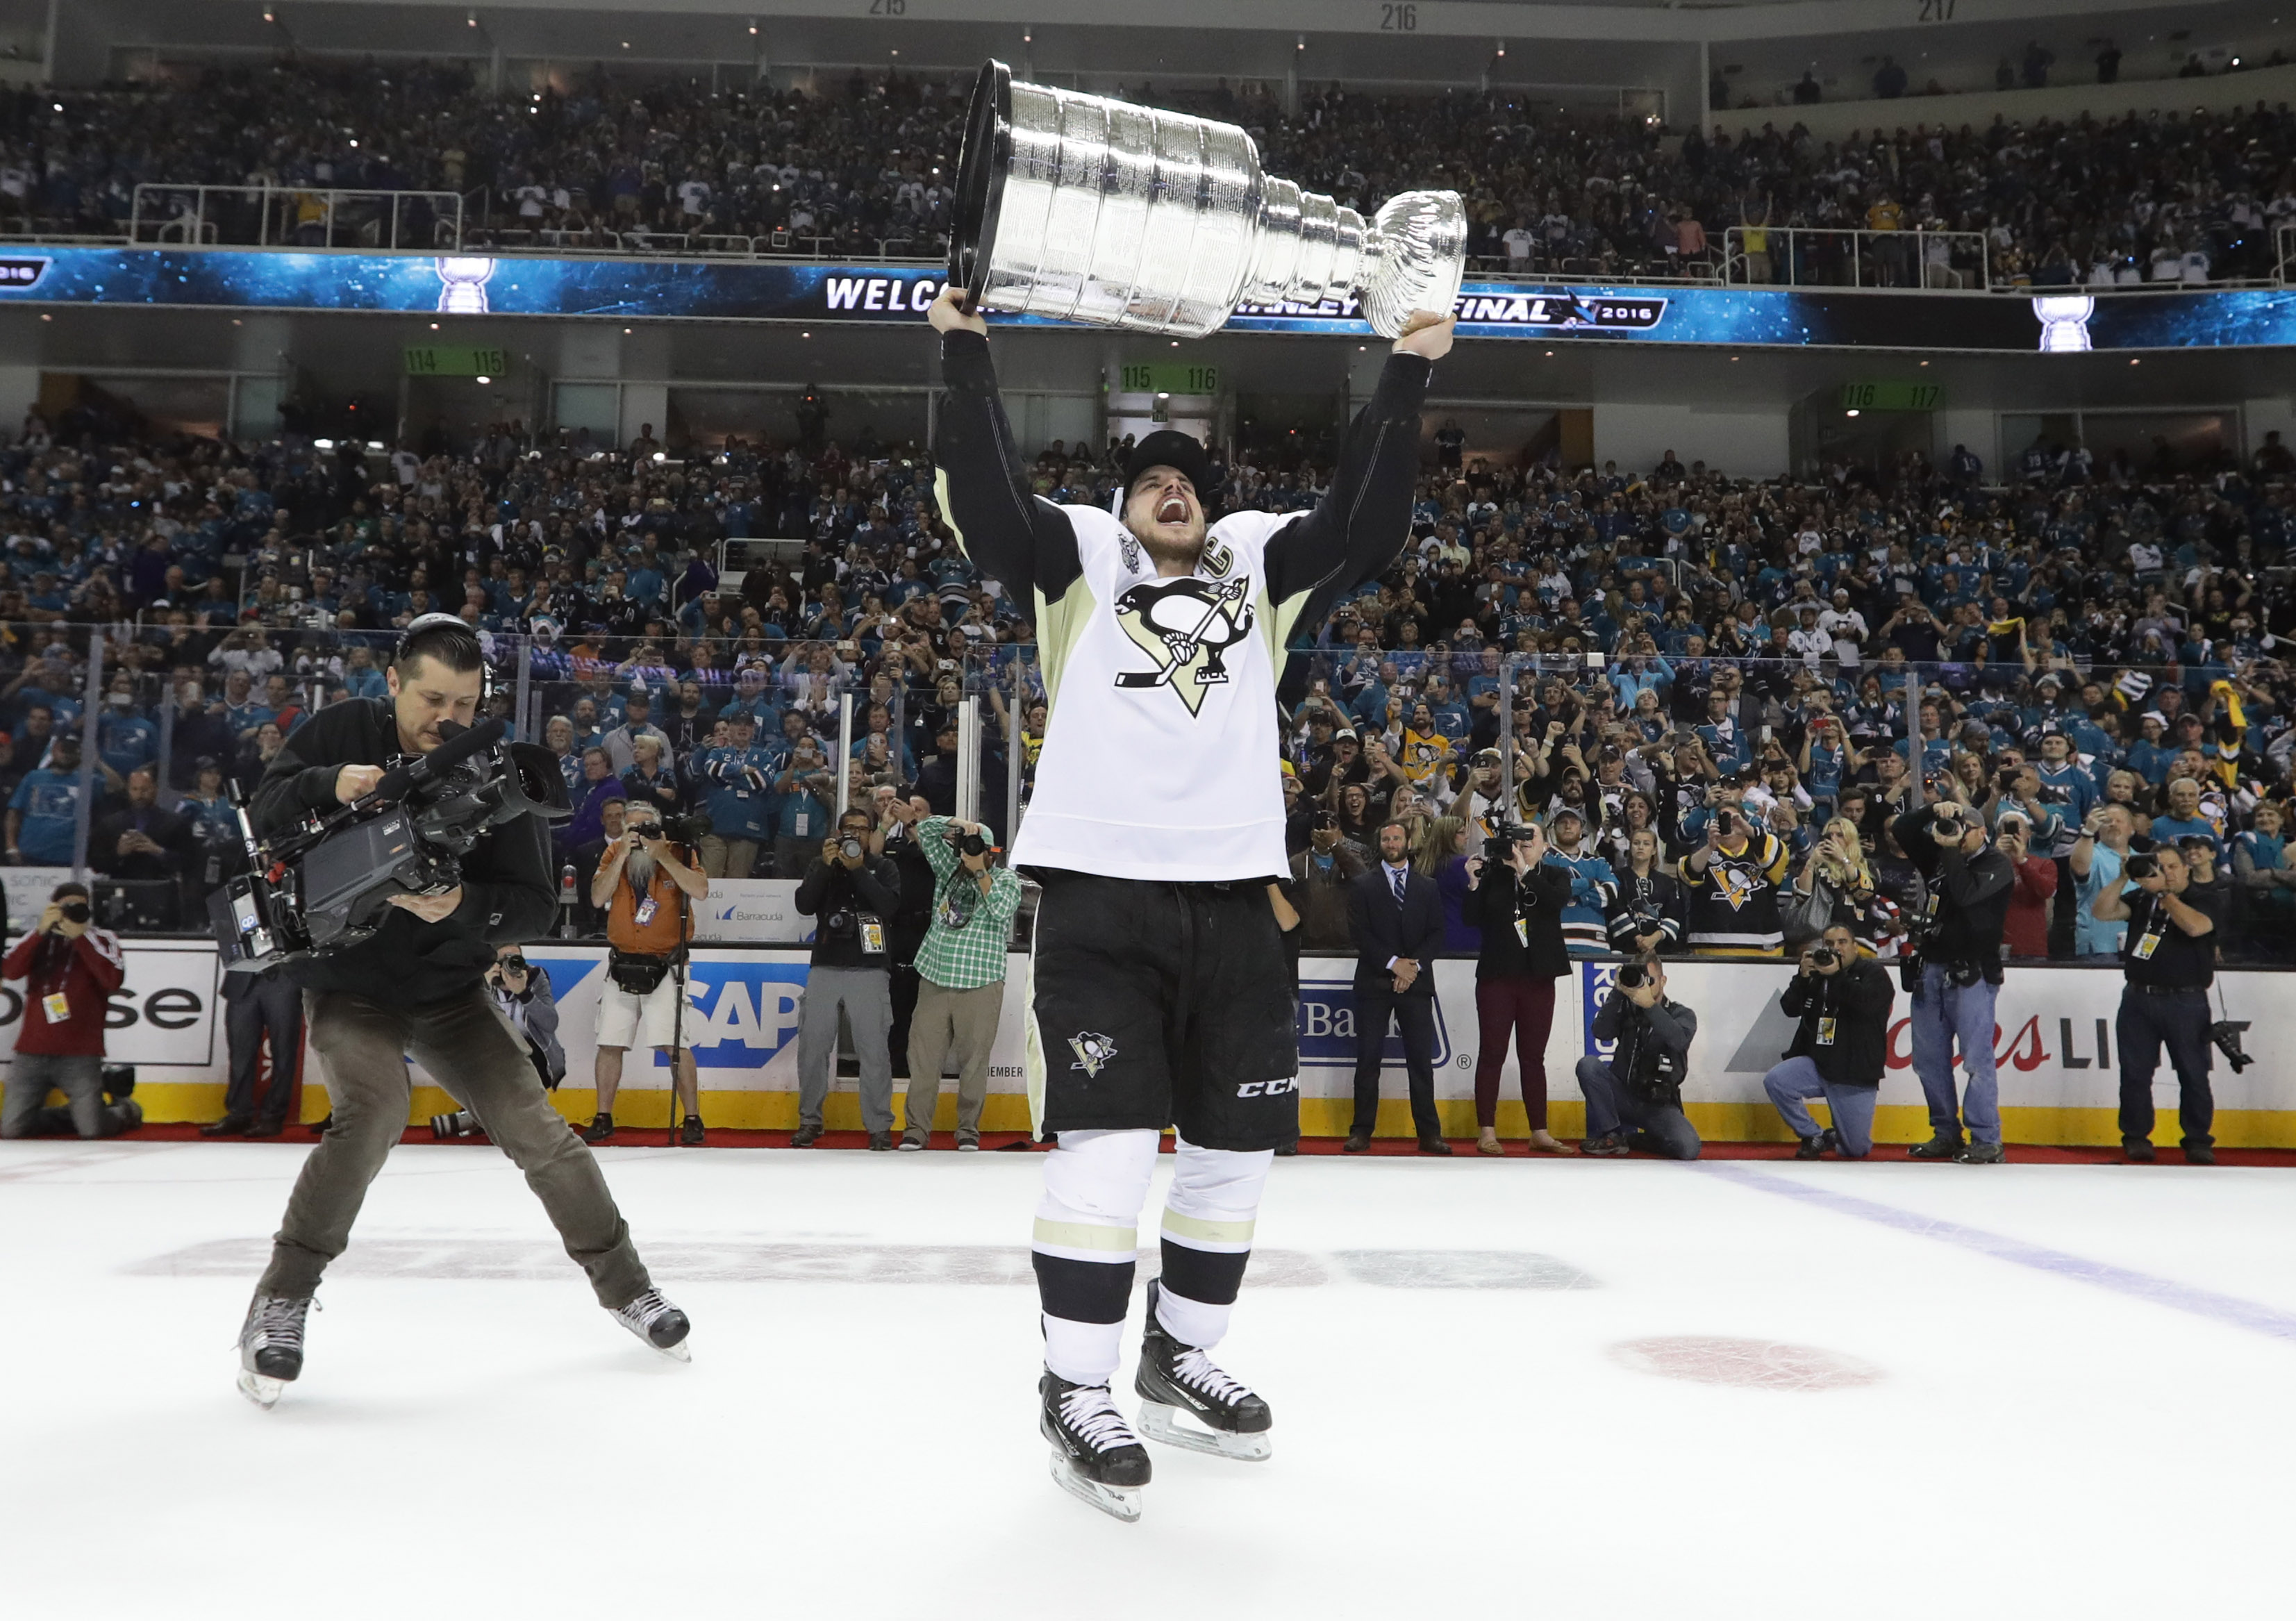 Pittsburgh Penguins Win Hockeys Stanley Cup CBS News - Map us stanley cup penguins sharks